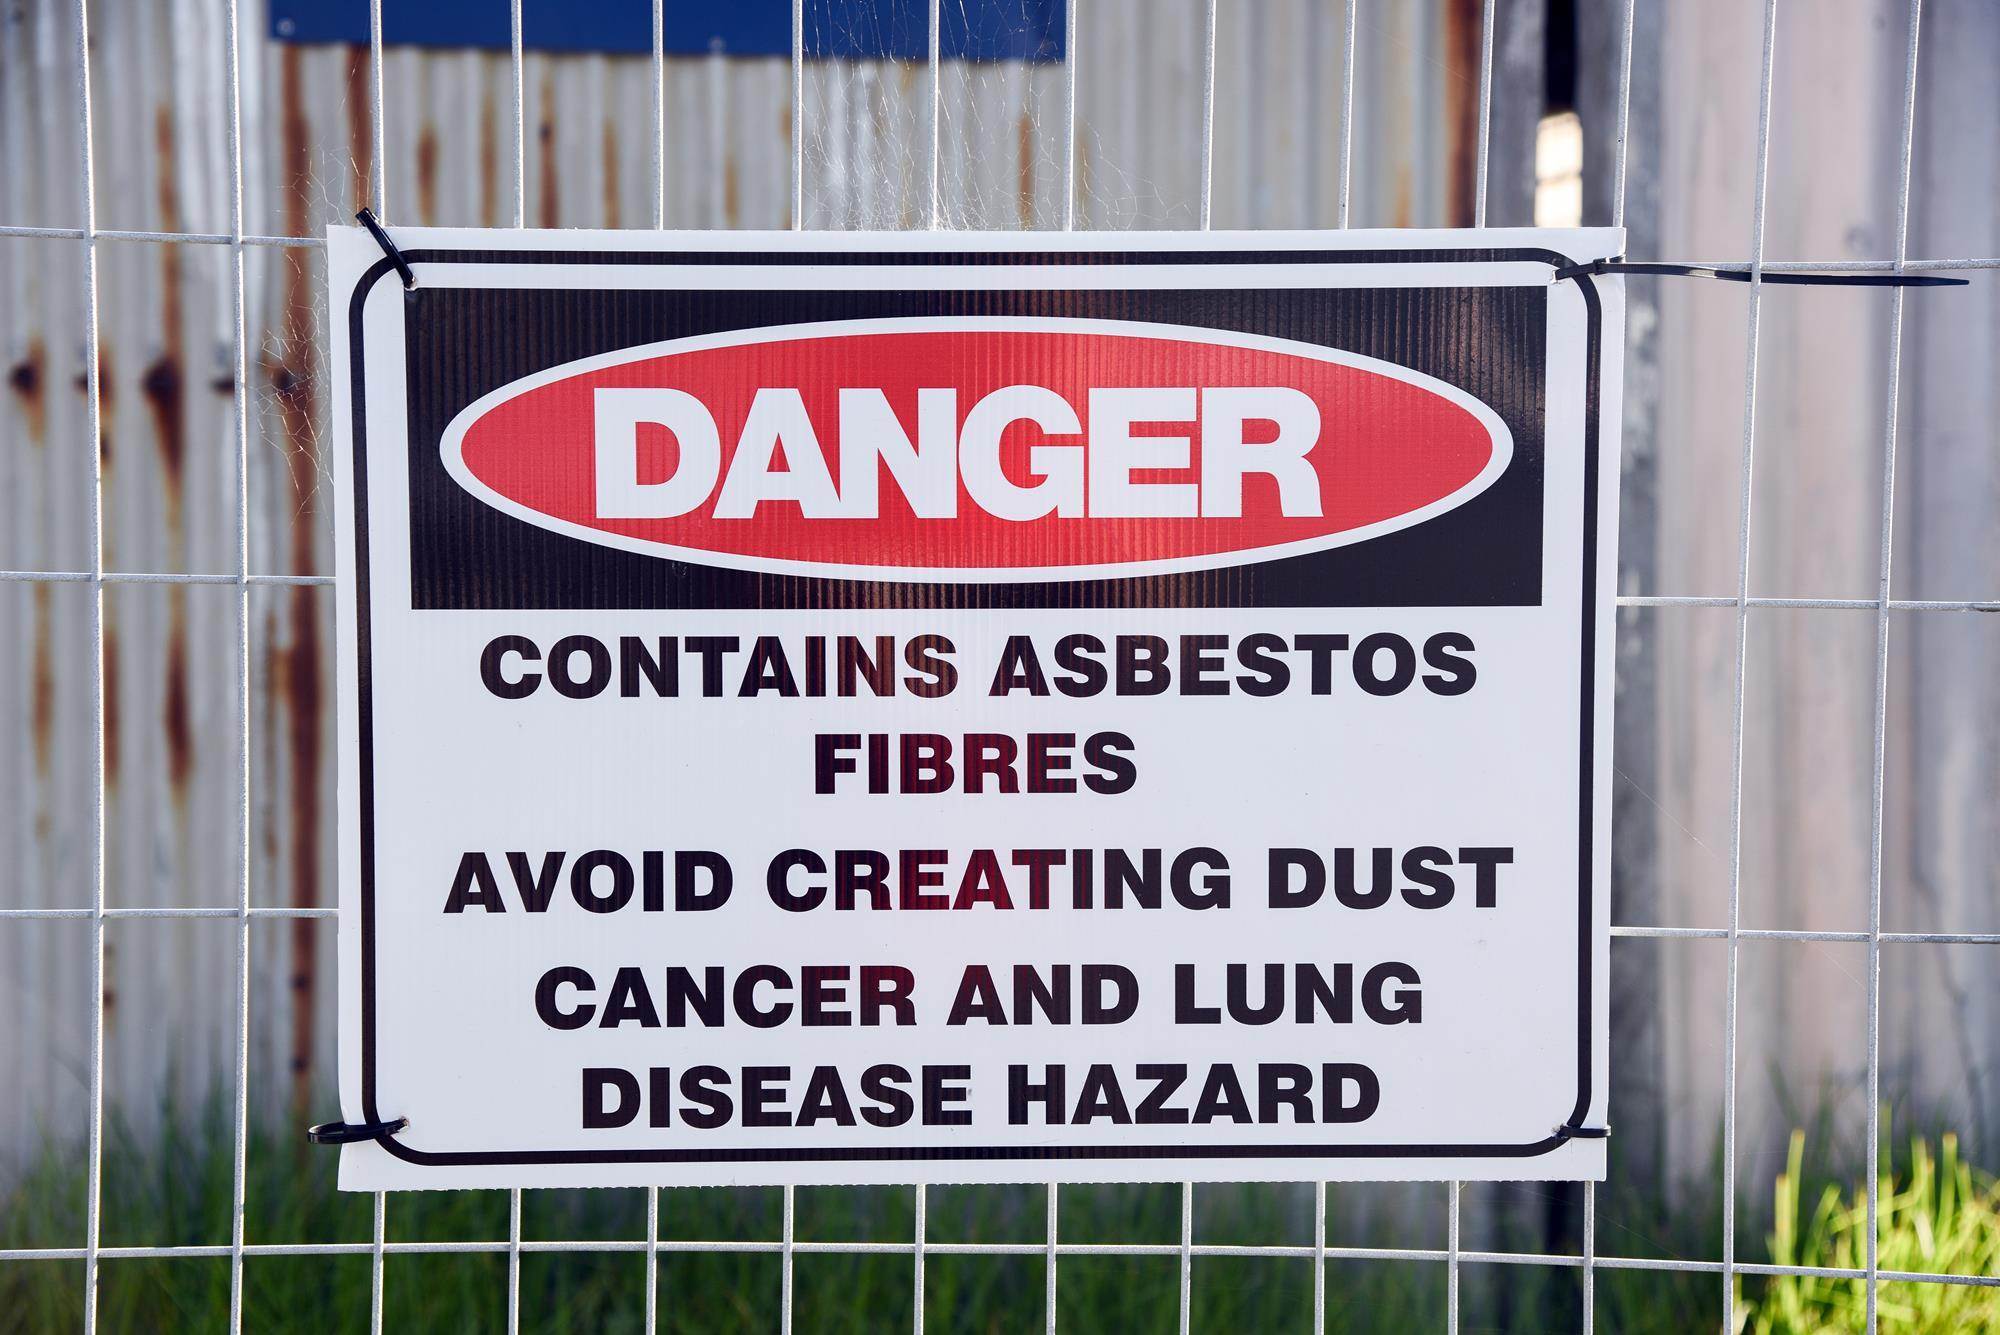 Asbestos Fibers In Lungs : Asbestos still lurks in older buildings are your lungs at risk